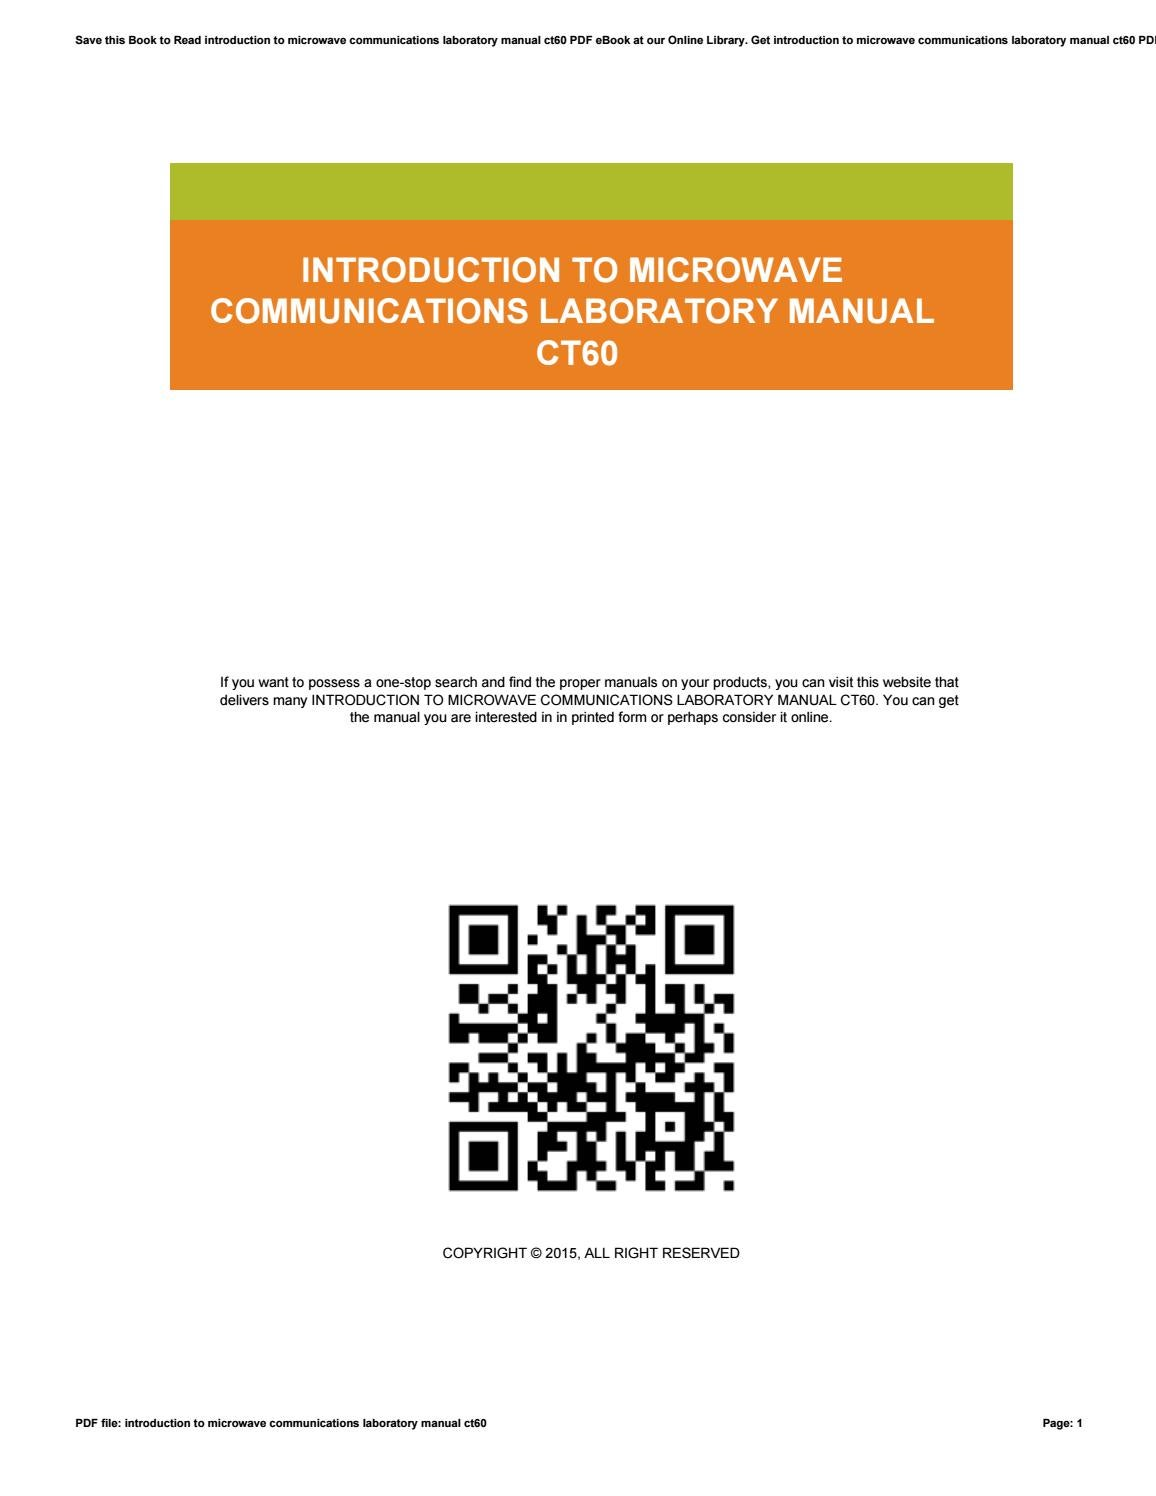 Introduction to microwave communications laboratory manual ct60 by  StacySegal3438 - issuu